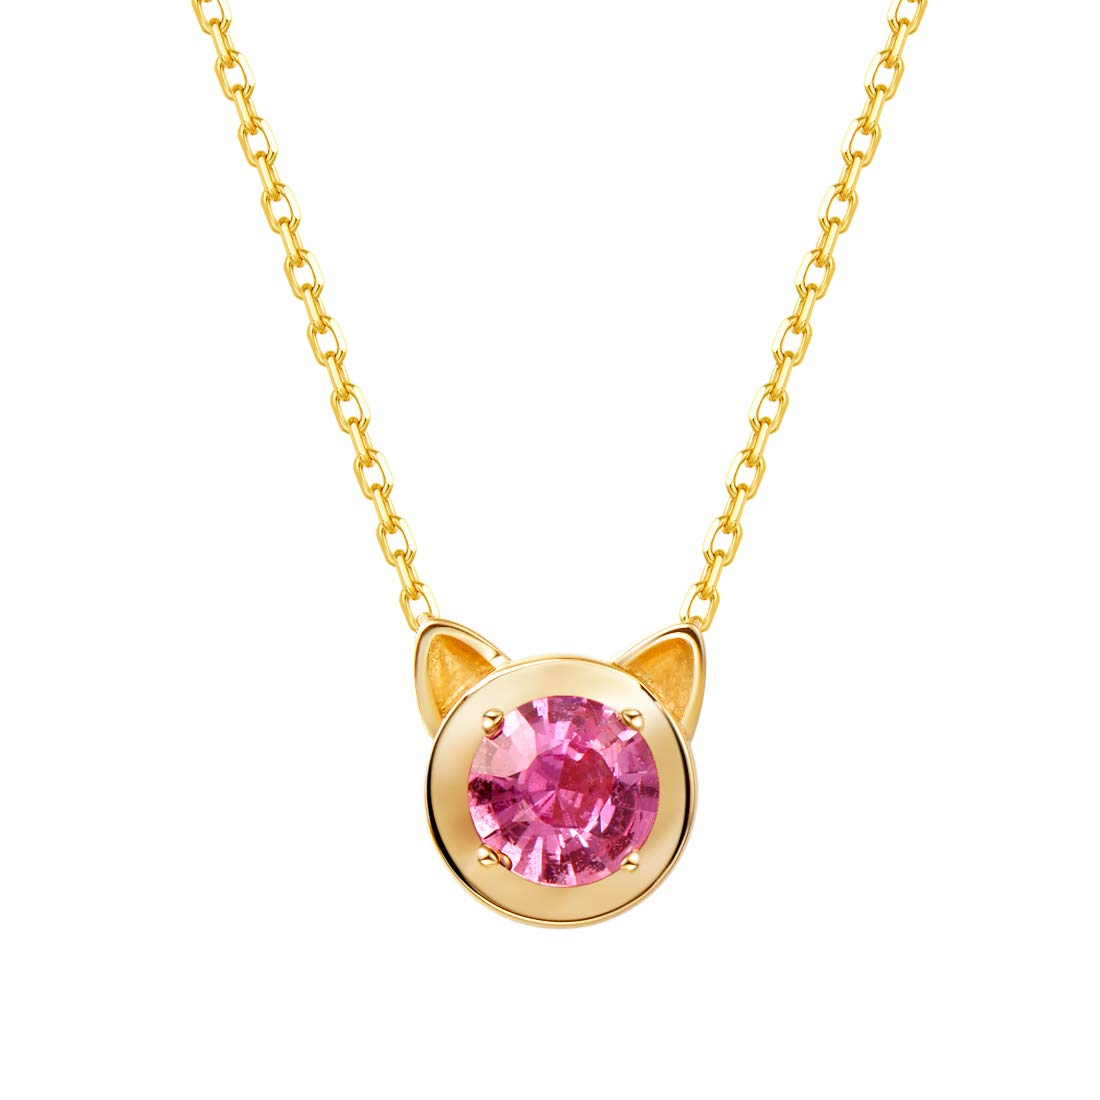 Carleen 14k Solid Yellow Gold Round Garnet/Pink Sapphire/Morganite/Amethyst/Topaz Cat Ear Pendant Kitty Necklace For Women Girls, 16